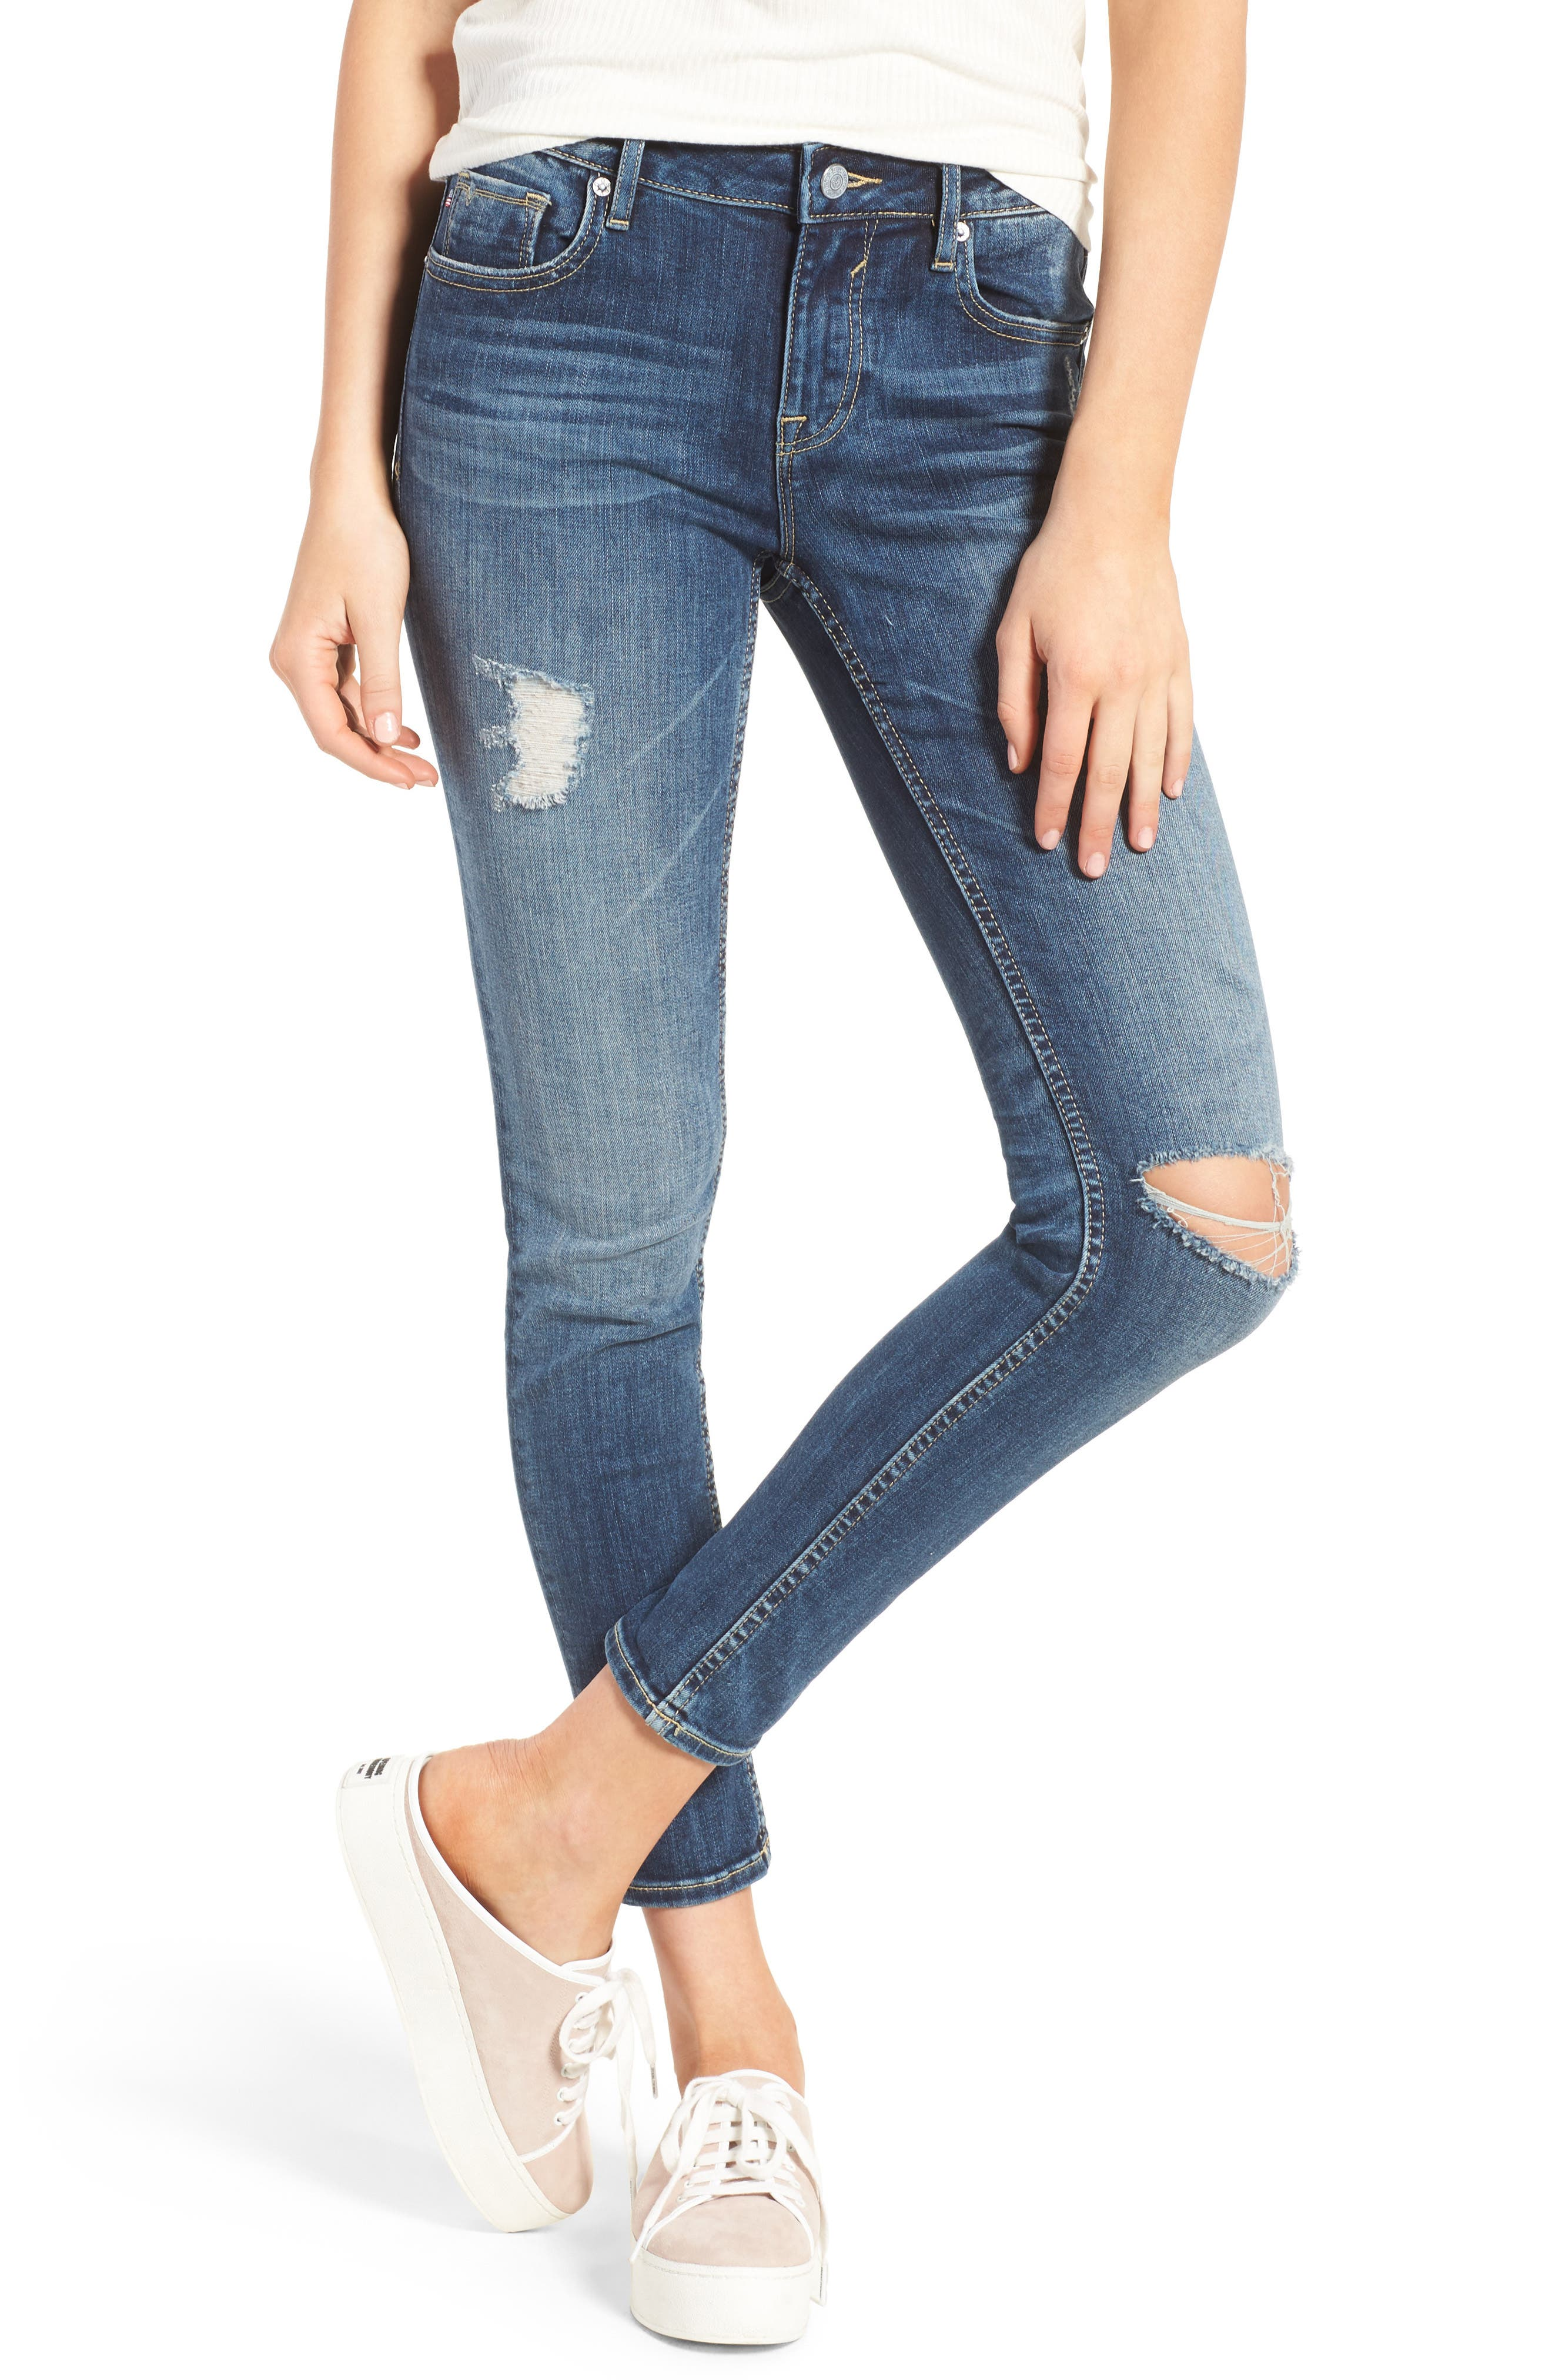 Thompson Tomboy Ripped Jeans,                             Main thumbnail 1, color,                             403